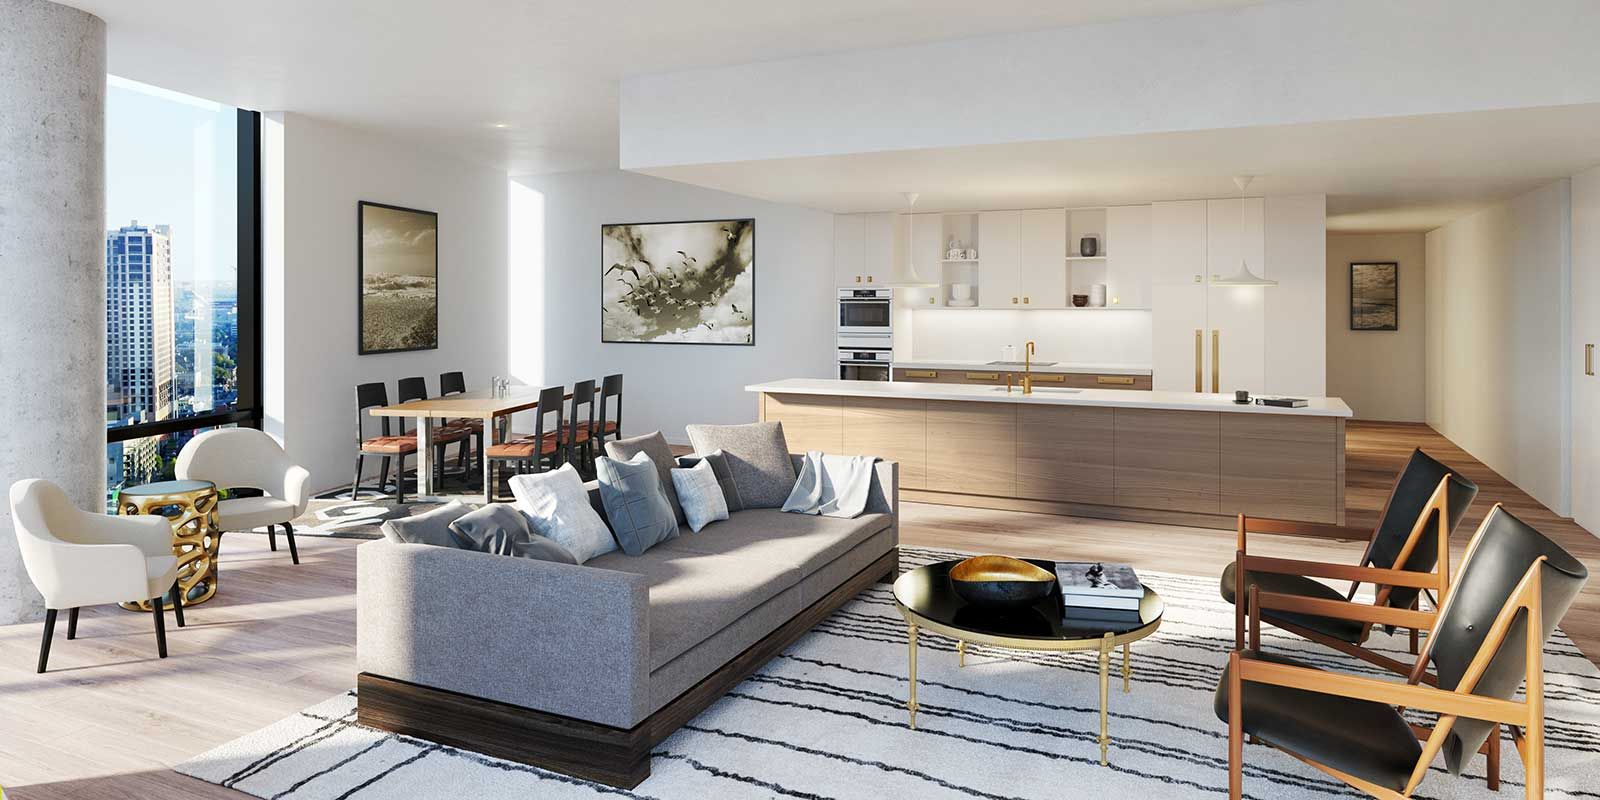 Unit in 70 Rainey featuring hardwood floors, minimalist furniture, and a view of downtown Austin